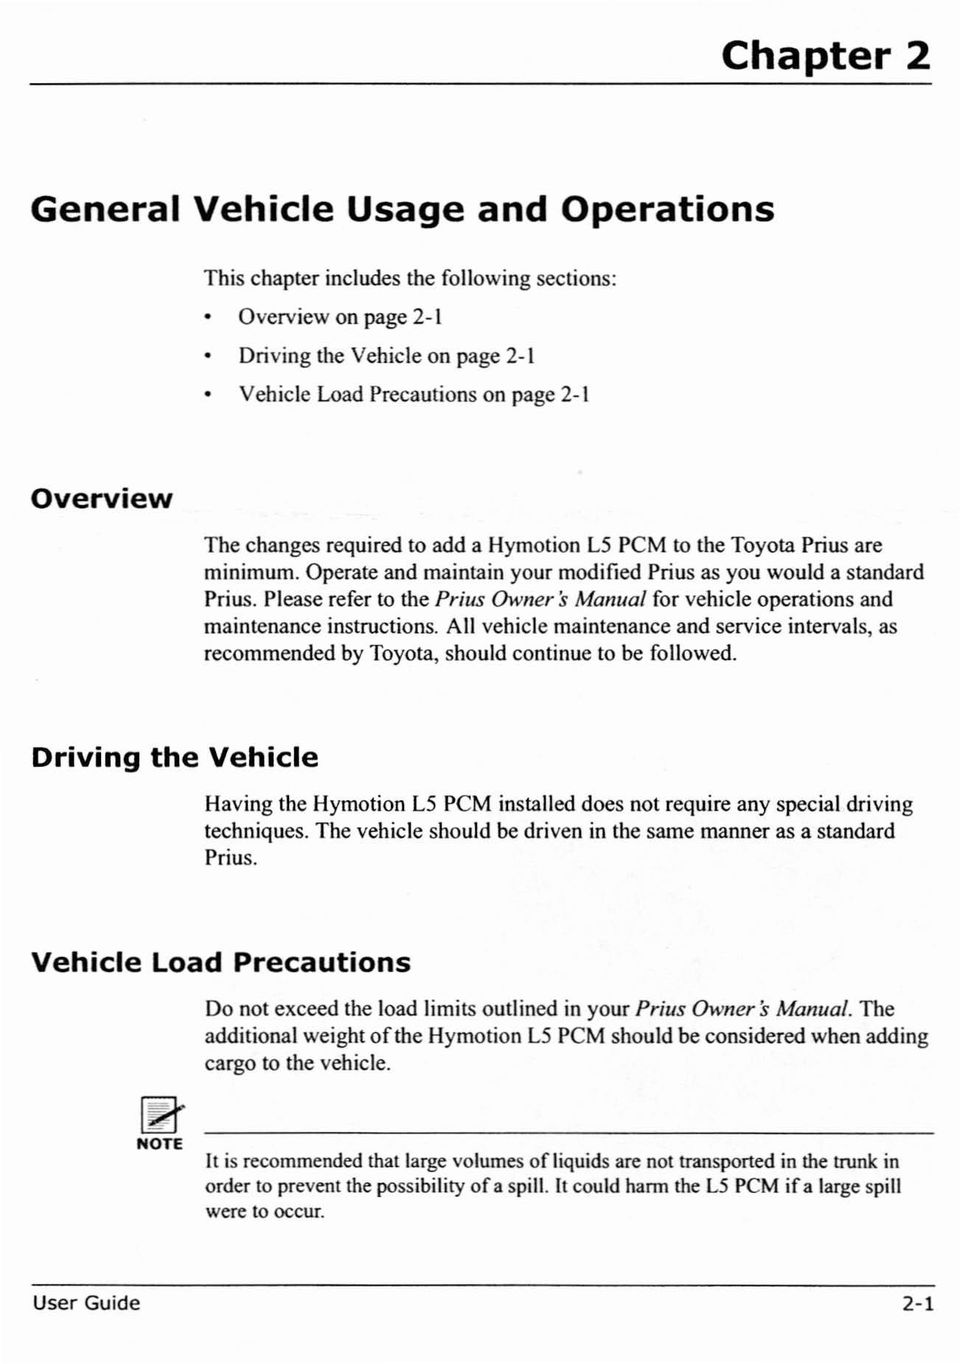 Please refer to the Prius Owners Manual for vehicle operations and maintenance  instructions. All vehicle